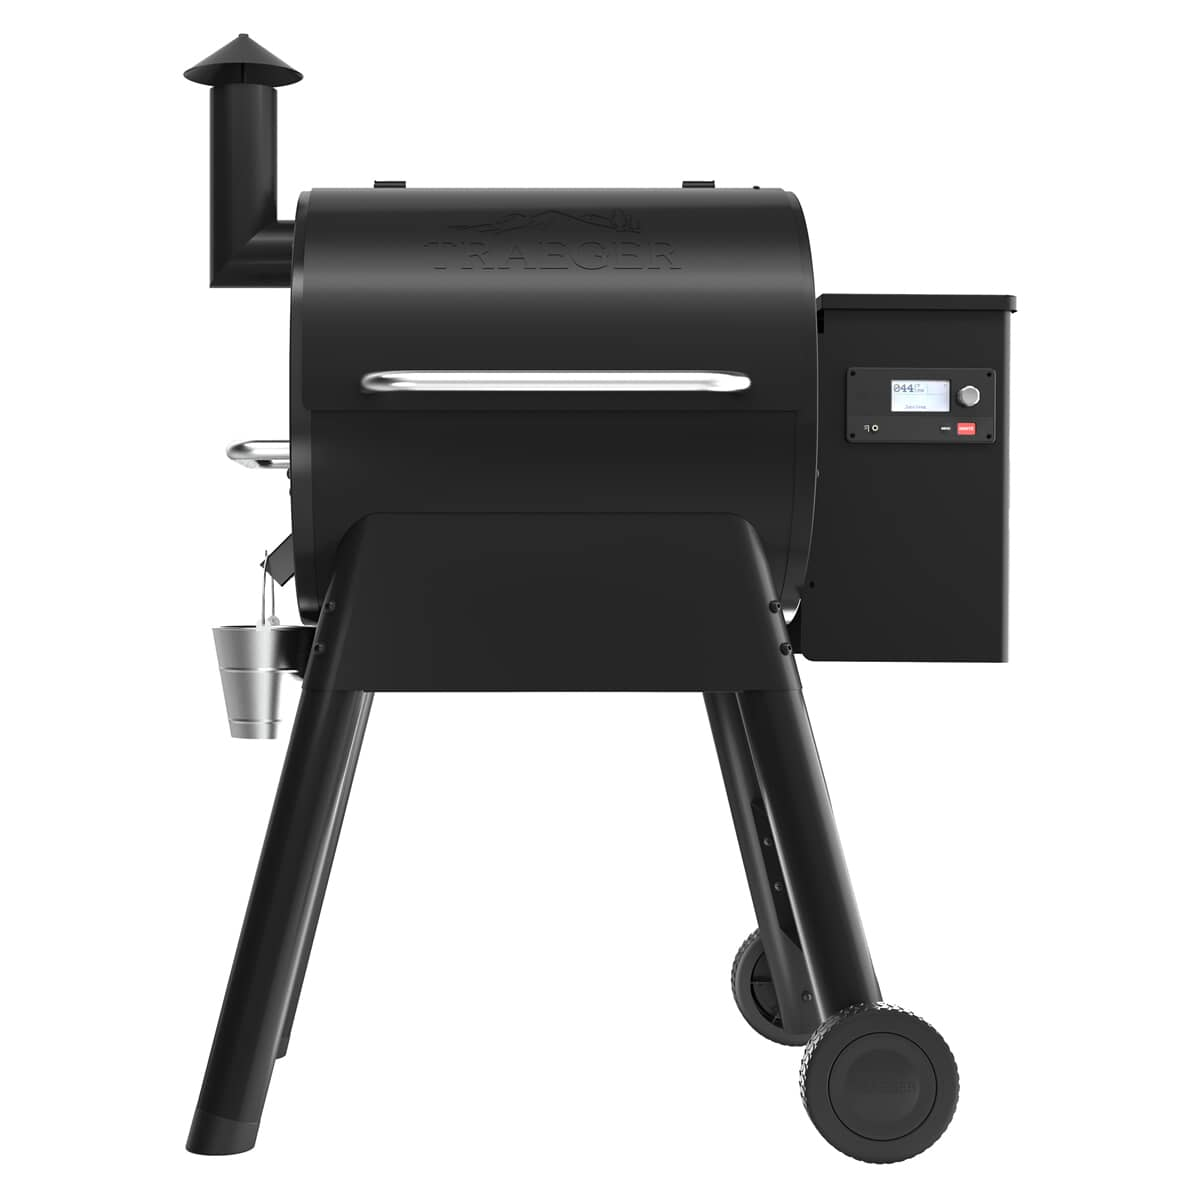 Traeger Grills Pro D2 575 with WiFire Controller